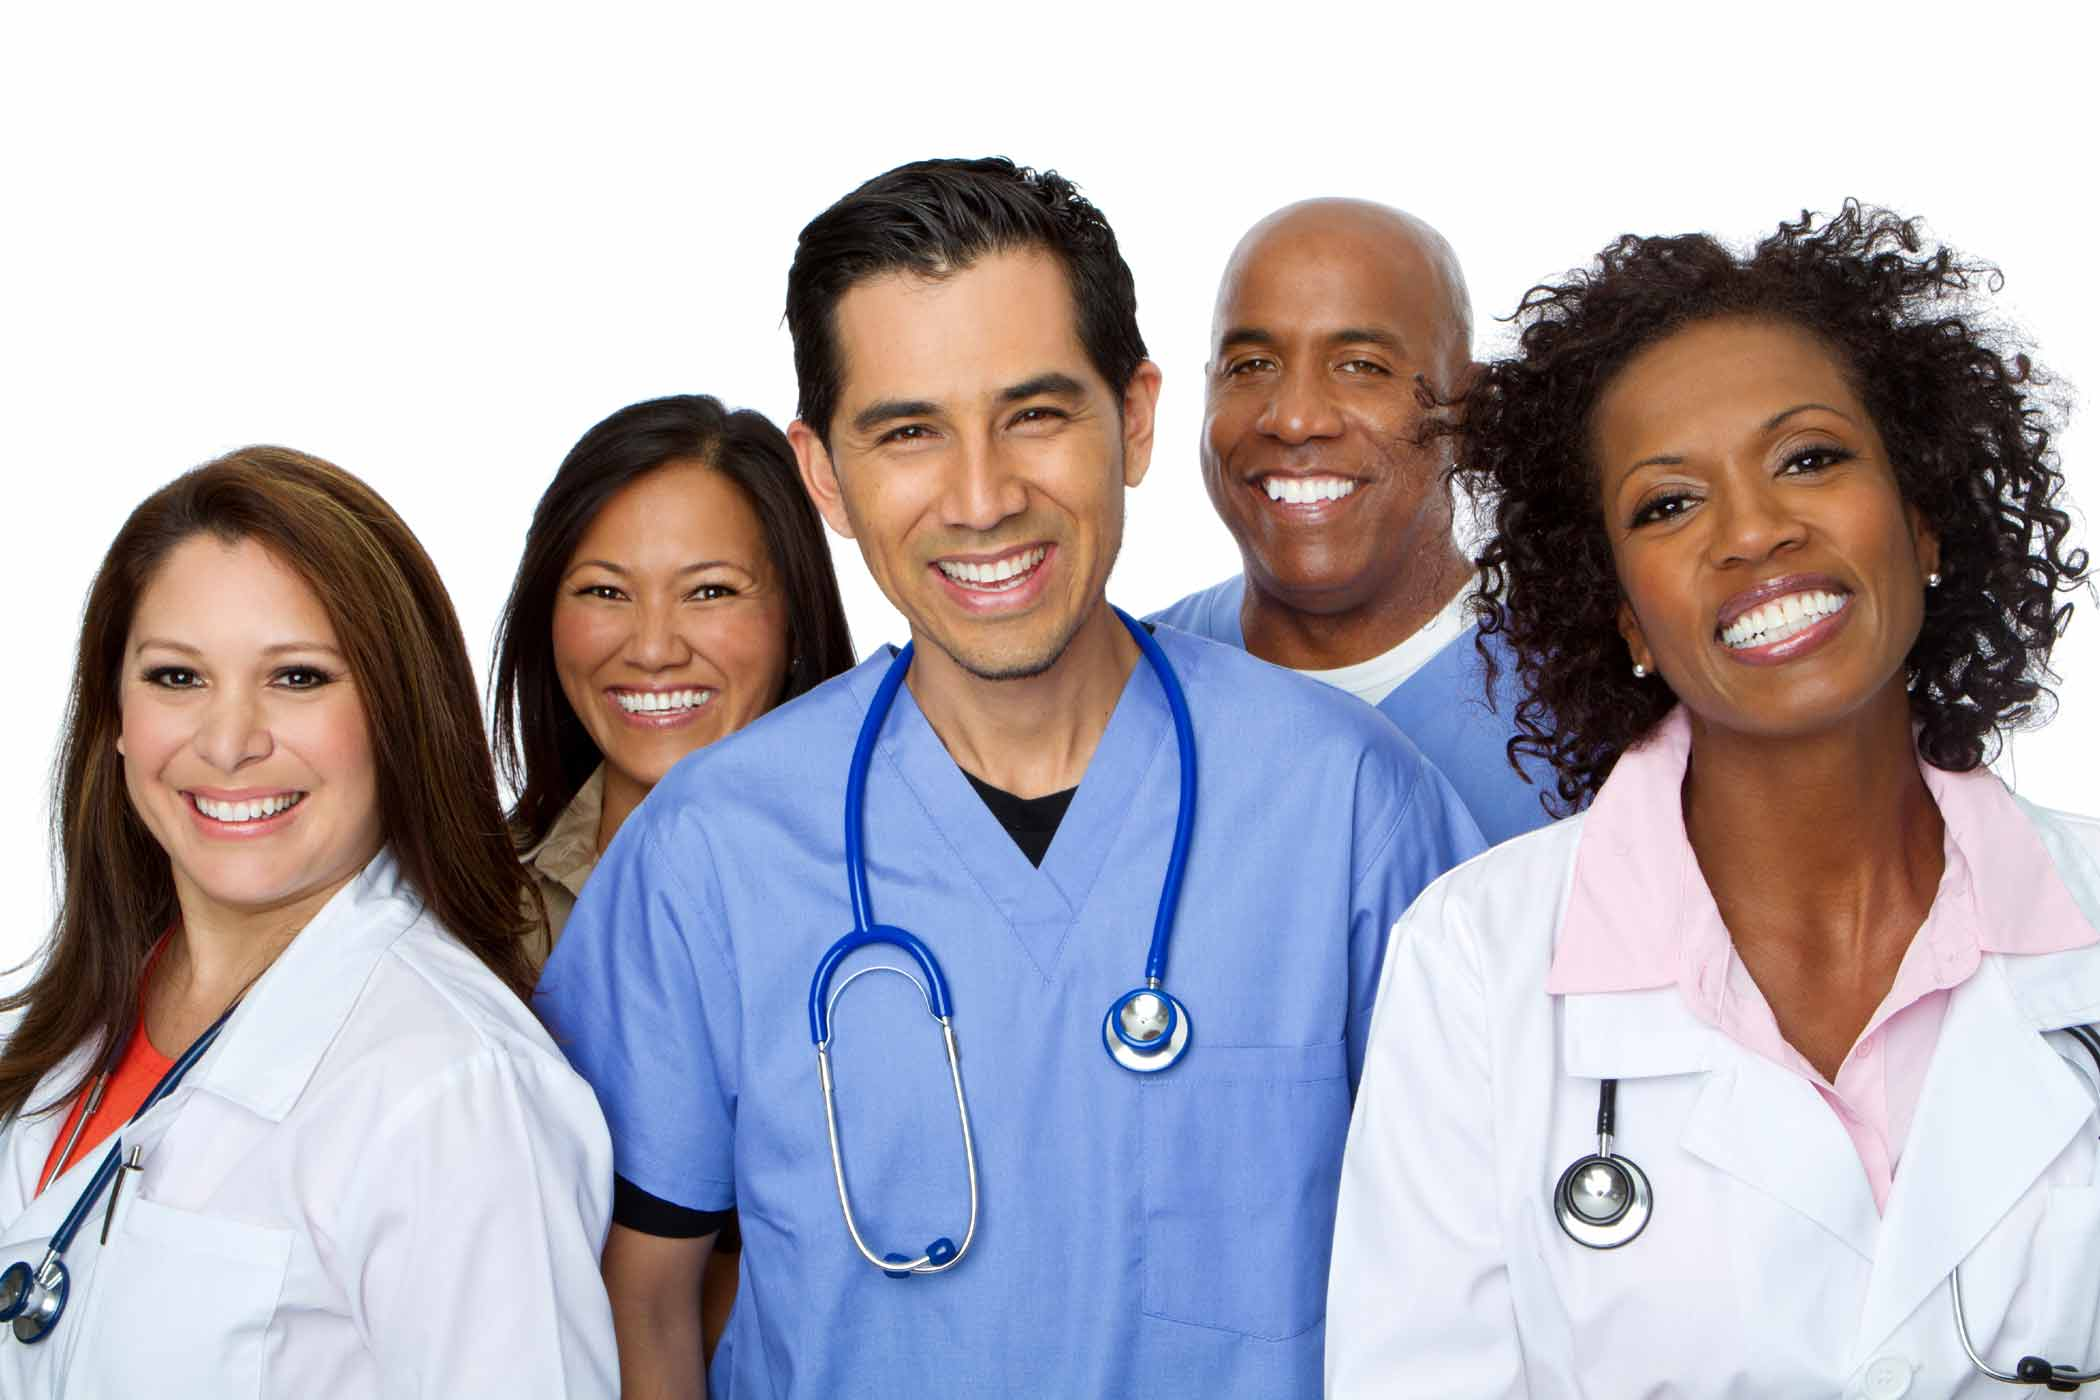 This Is Why Increasing Diversity In Healthcare Is